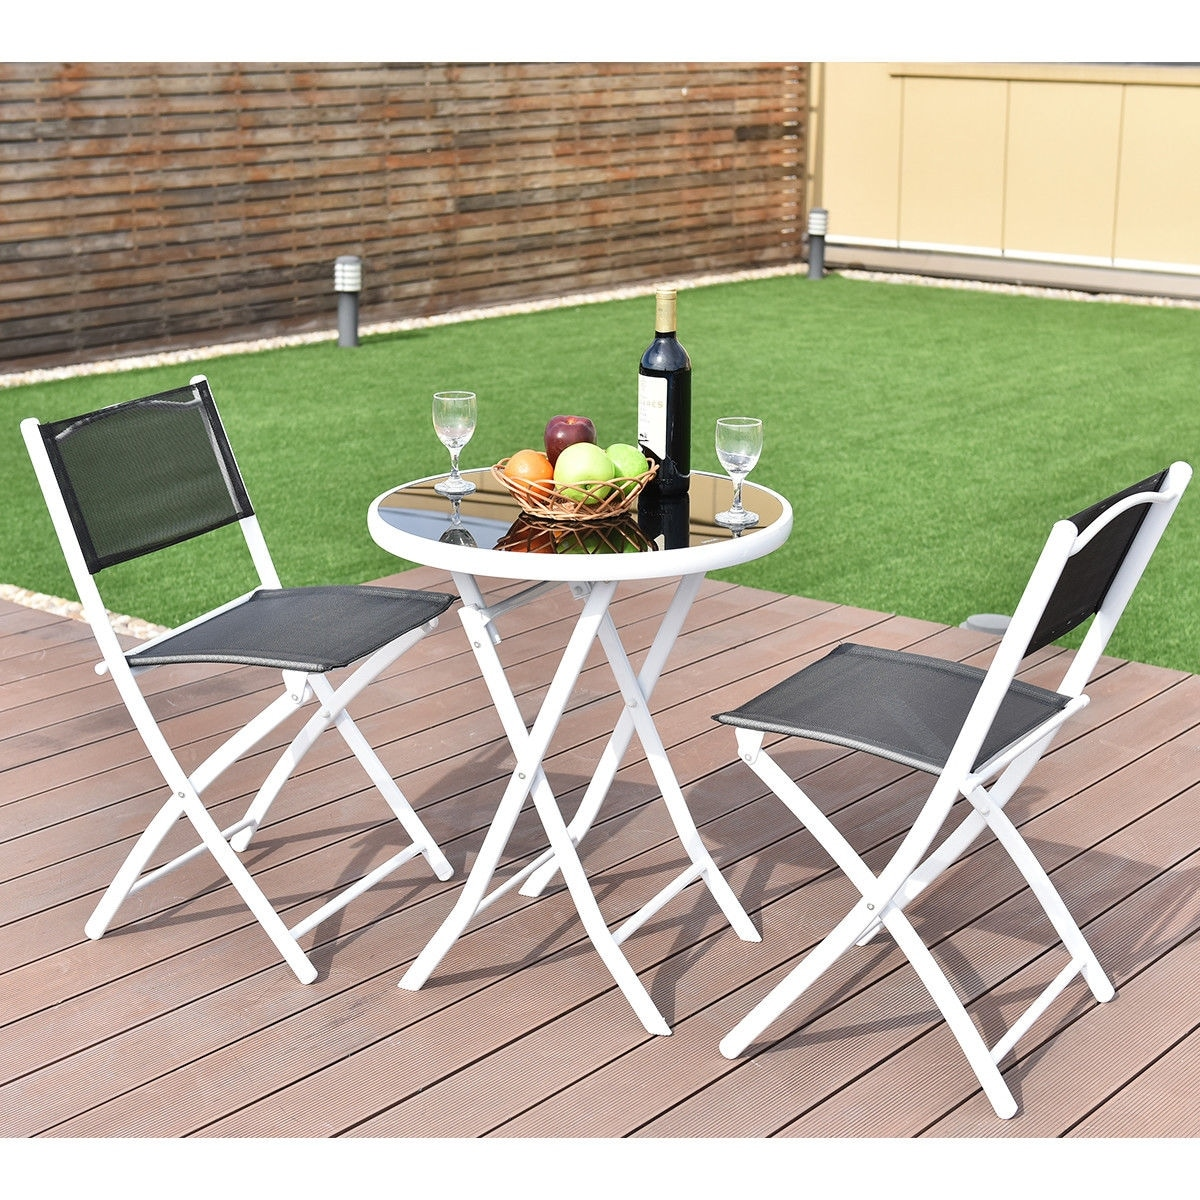 Folding Garden Furniture Costway 3 pcs folding bistro table chairs set garden backyard patio costway 3 pcs folding bistro table chairs set garden backyard patio furniture black free shipping today overstock 24429968 workwithnaturefo